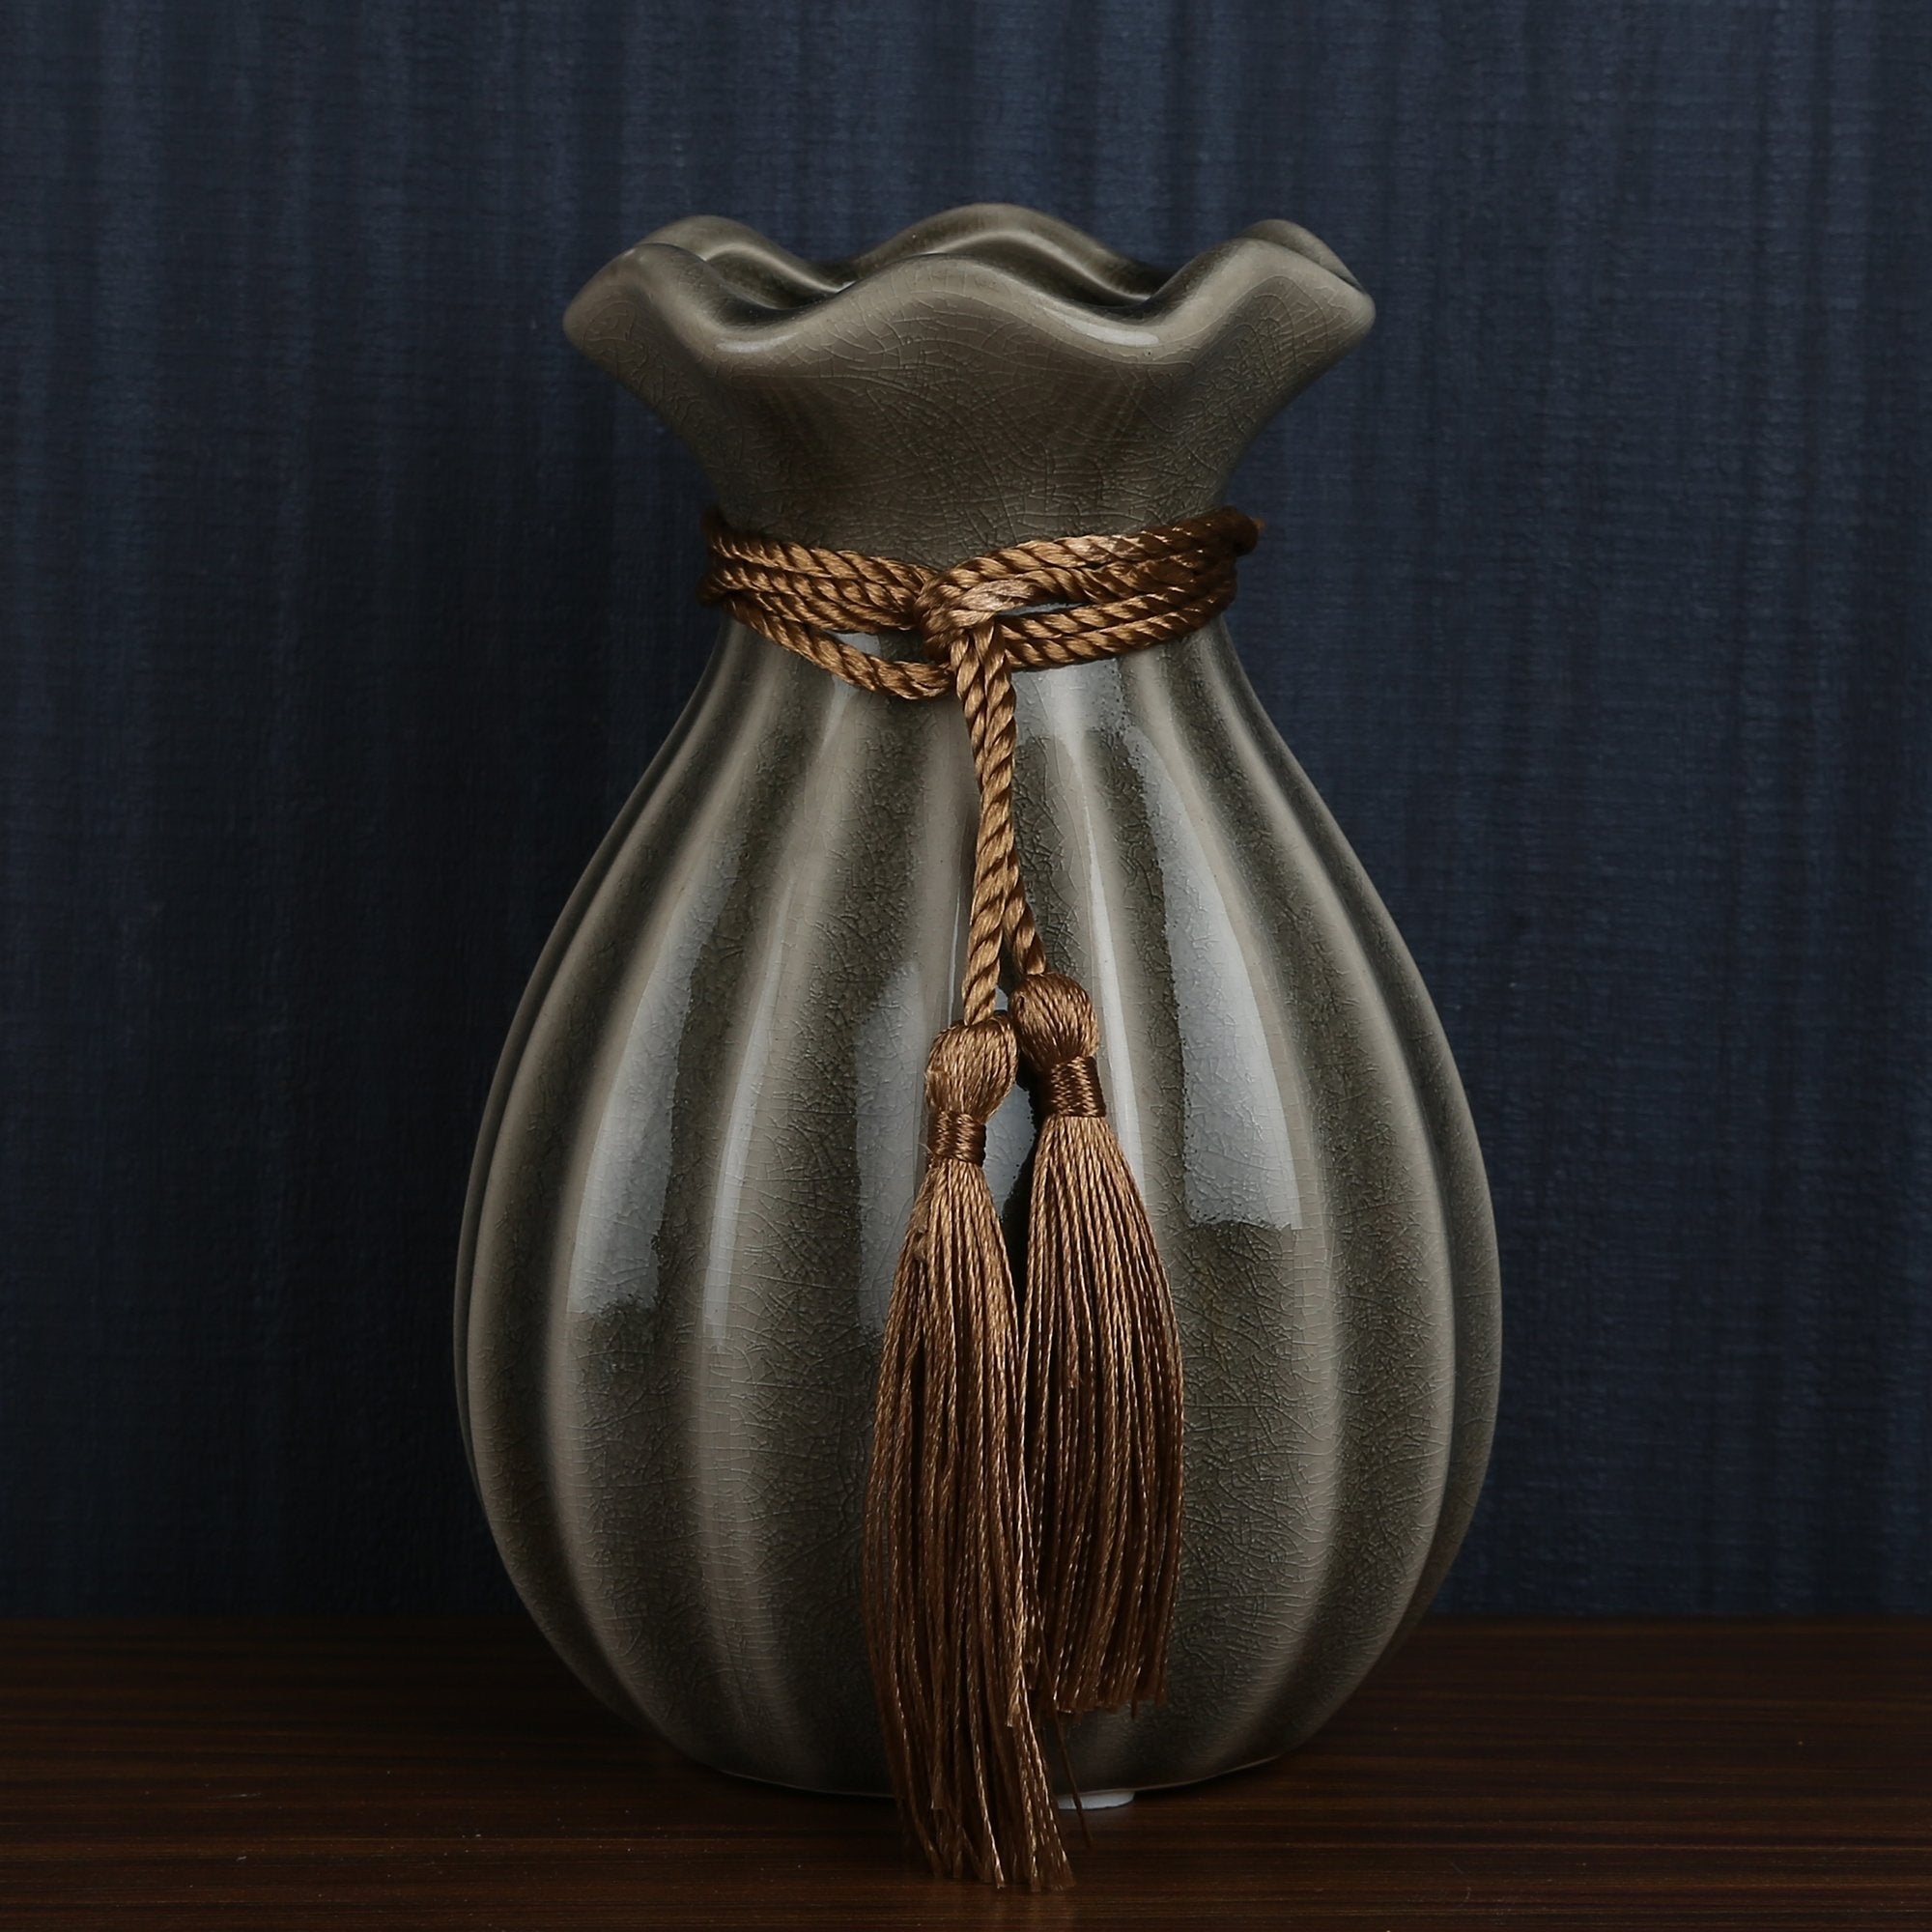 The Gold Thread Vase